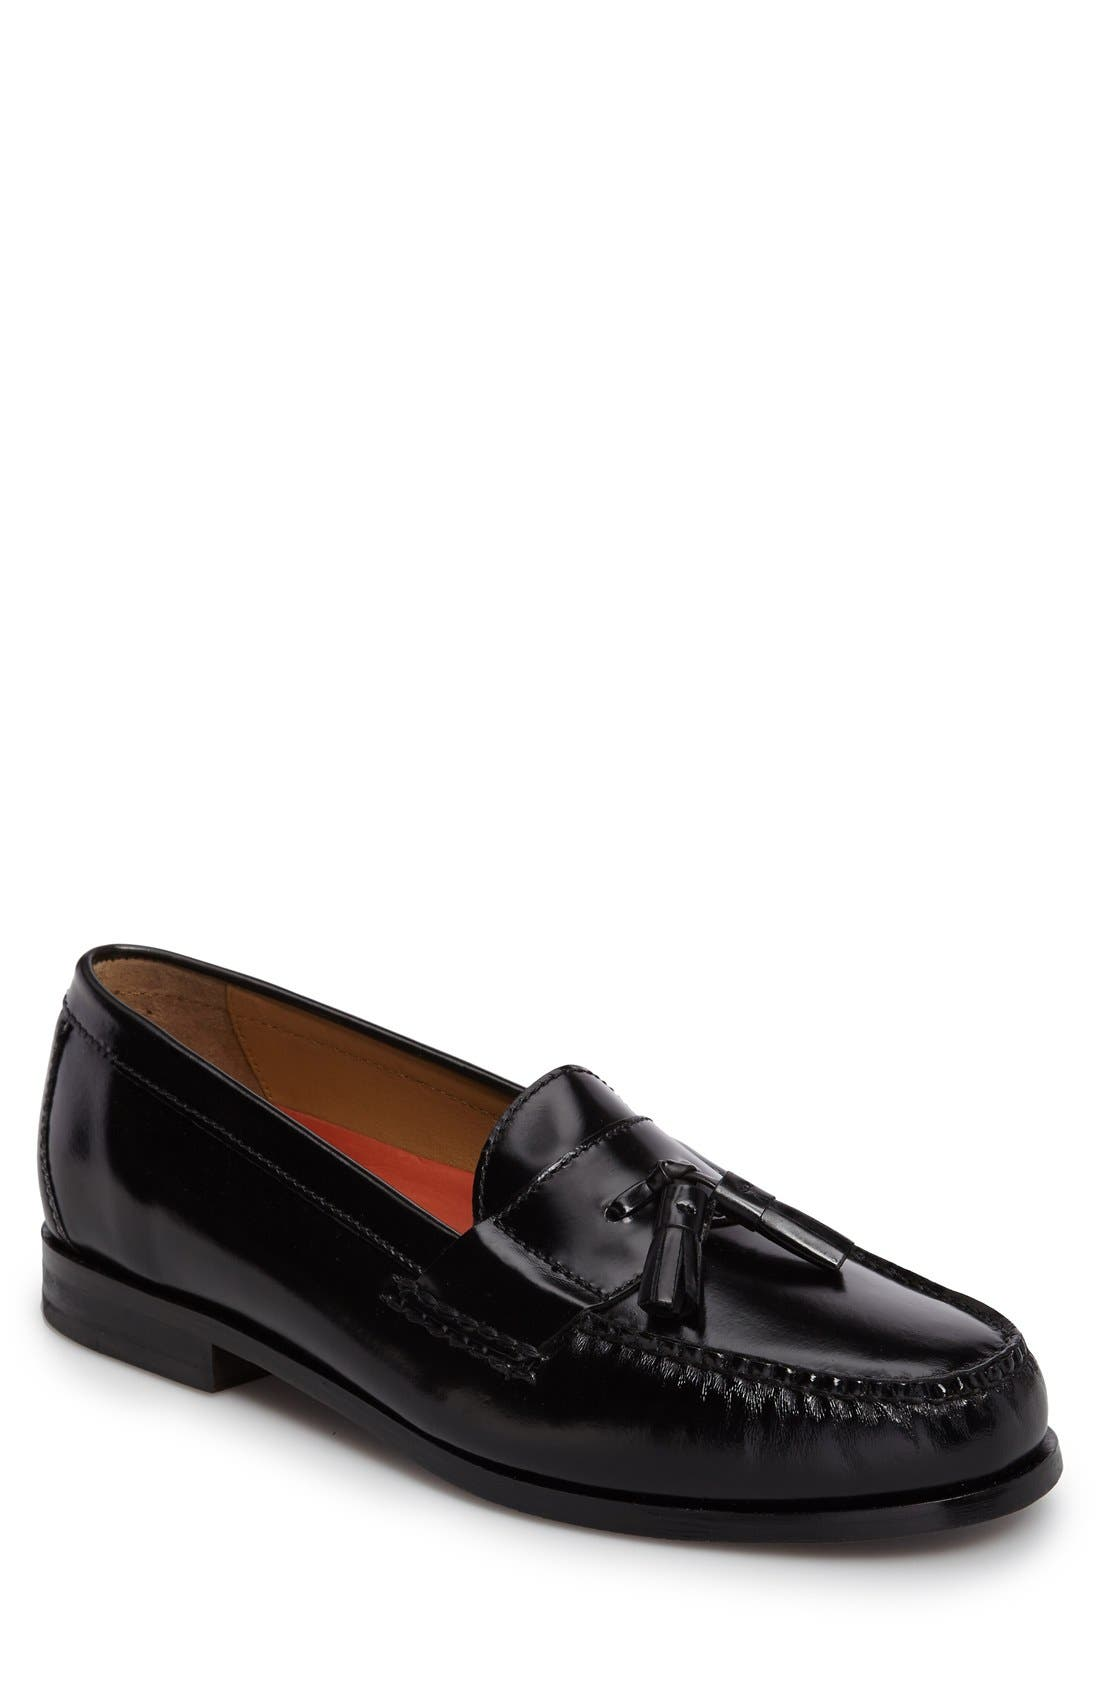 'Pinch Grand' Tassel Loafer,                         Main,                         color, 001